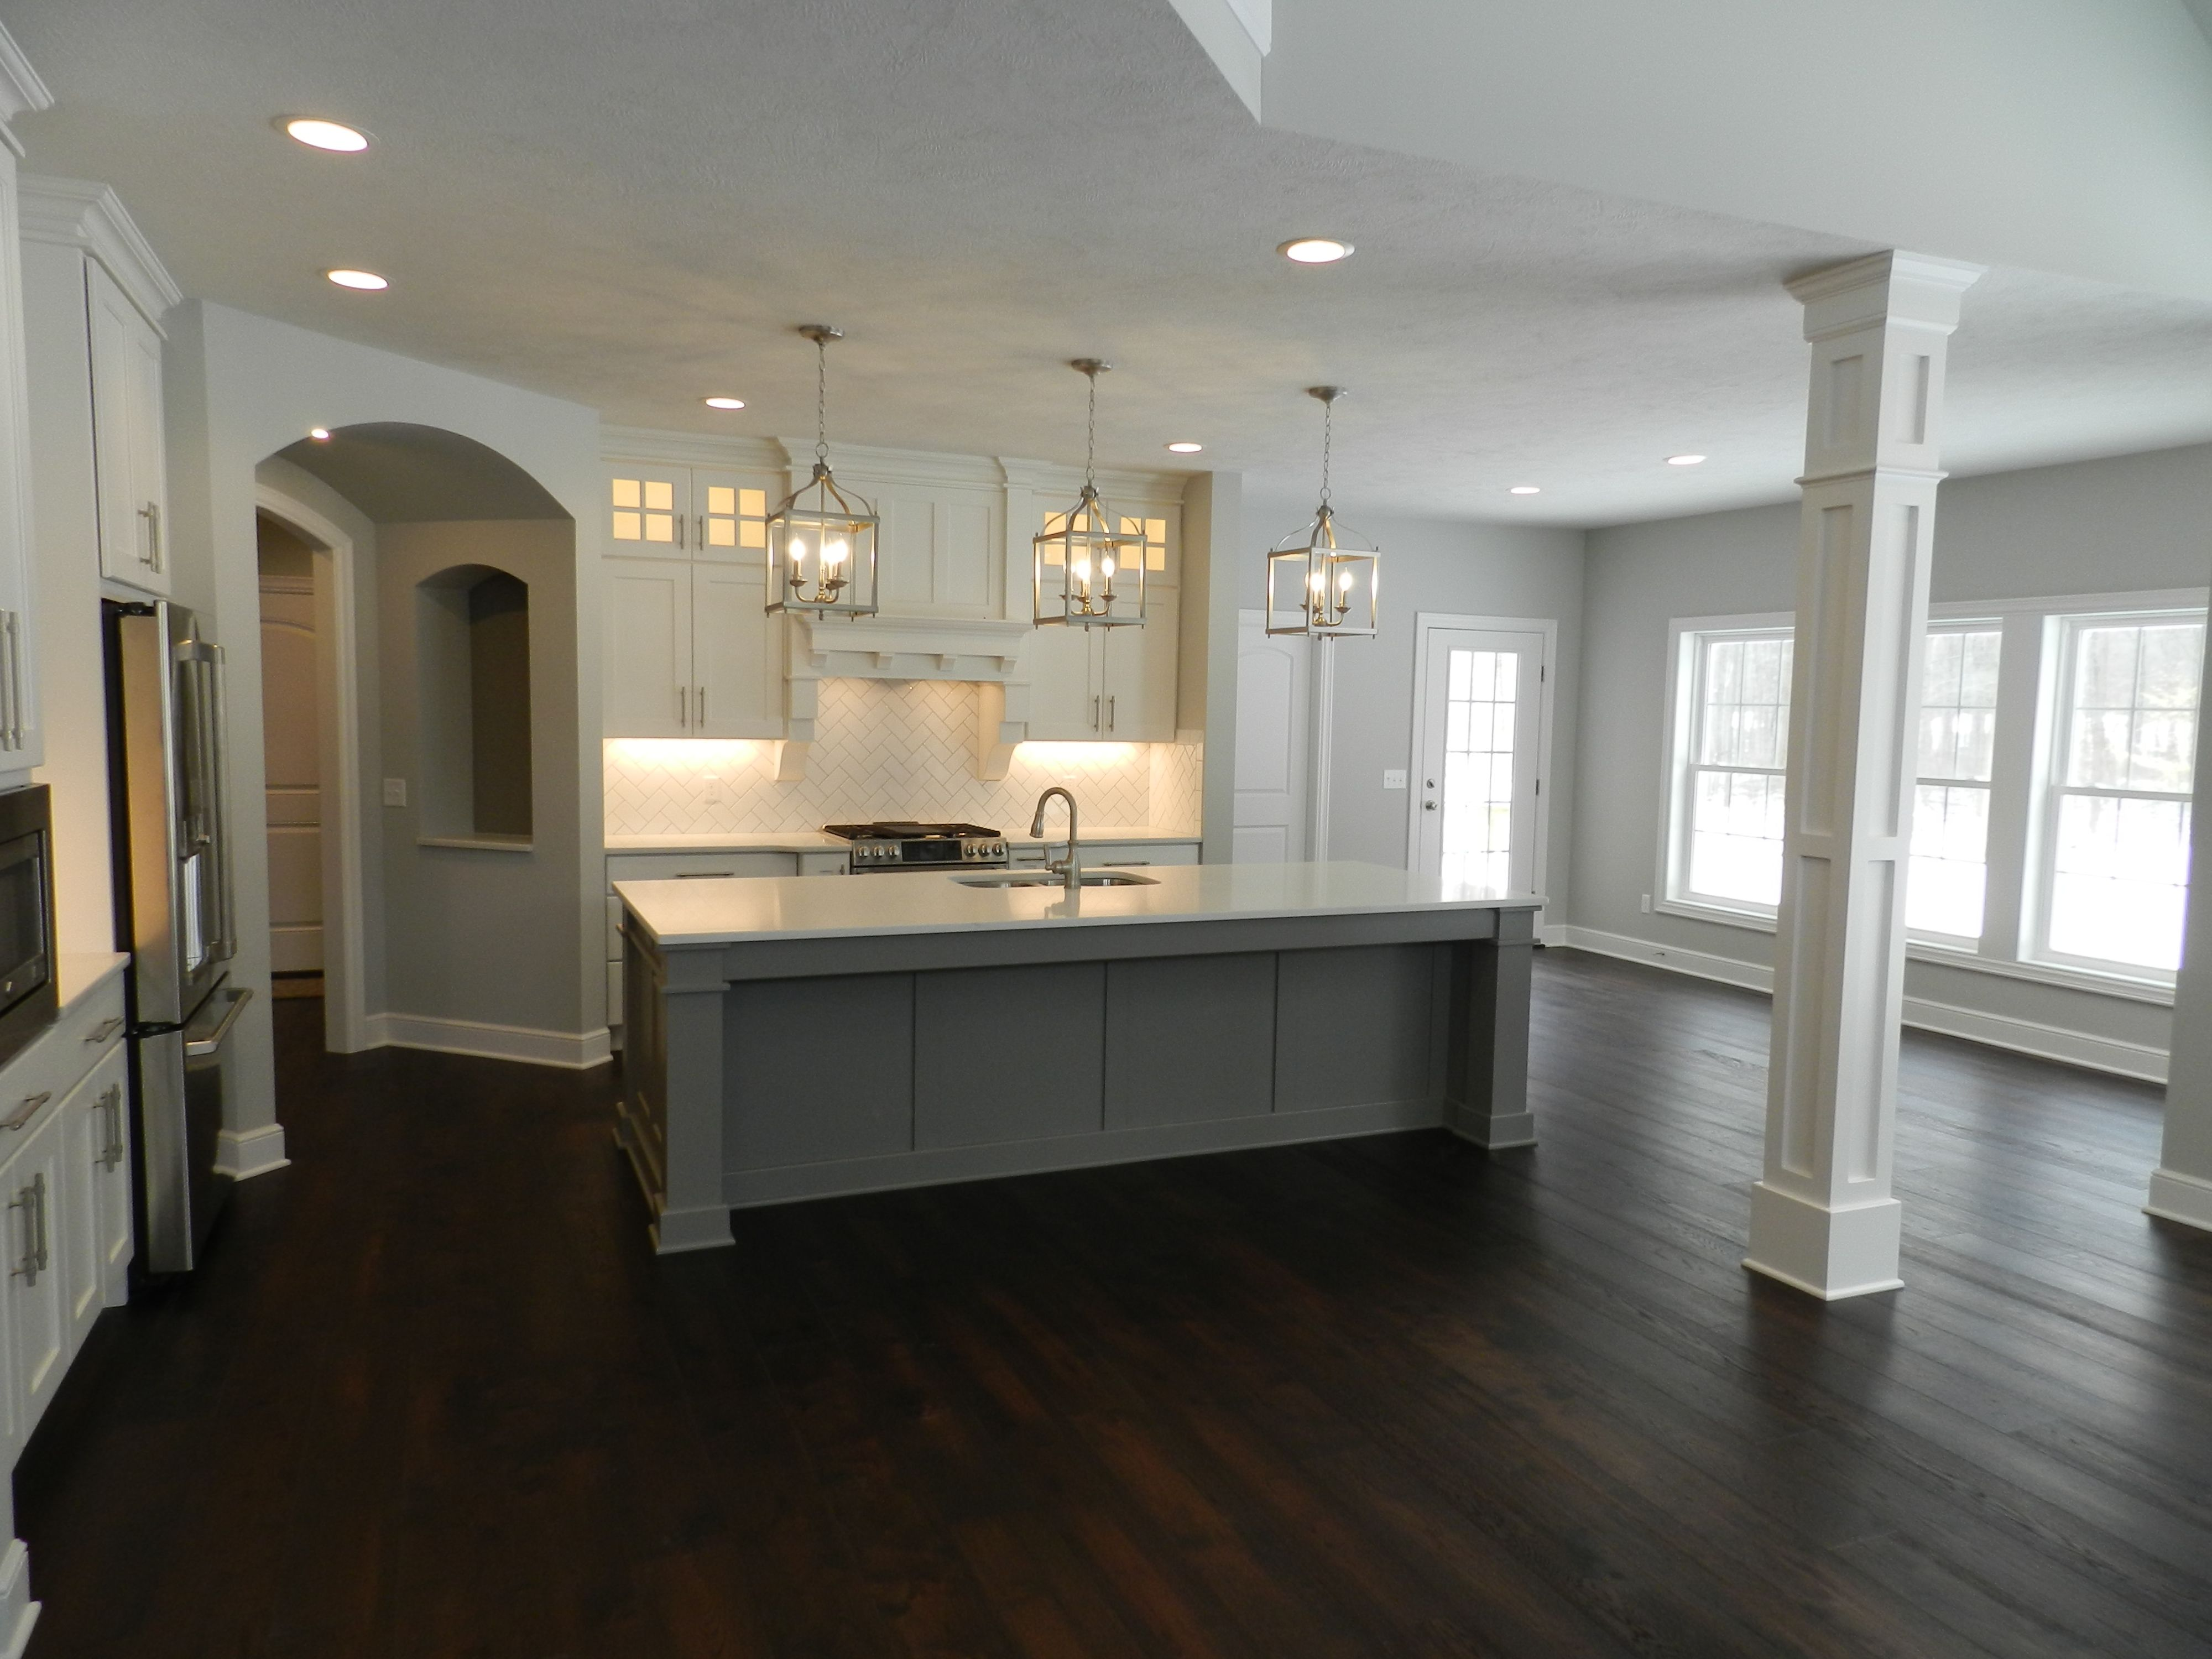 Kitchen featured in the Austin C1 By Classic Homes in Akron, OH